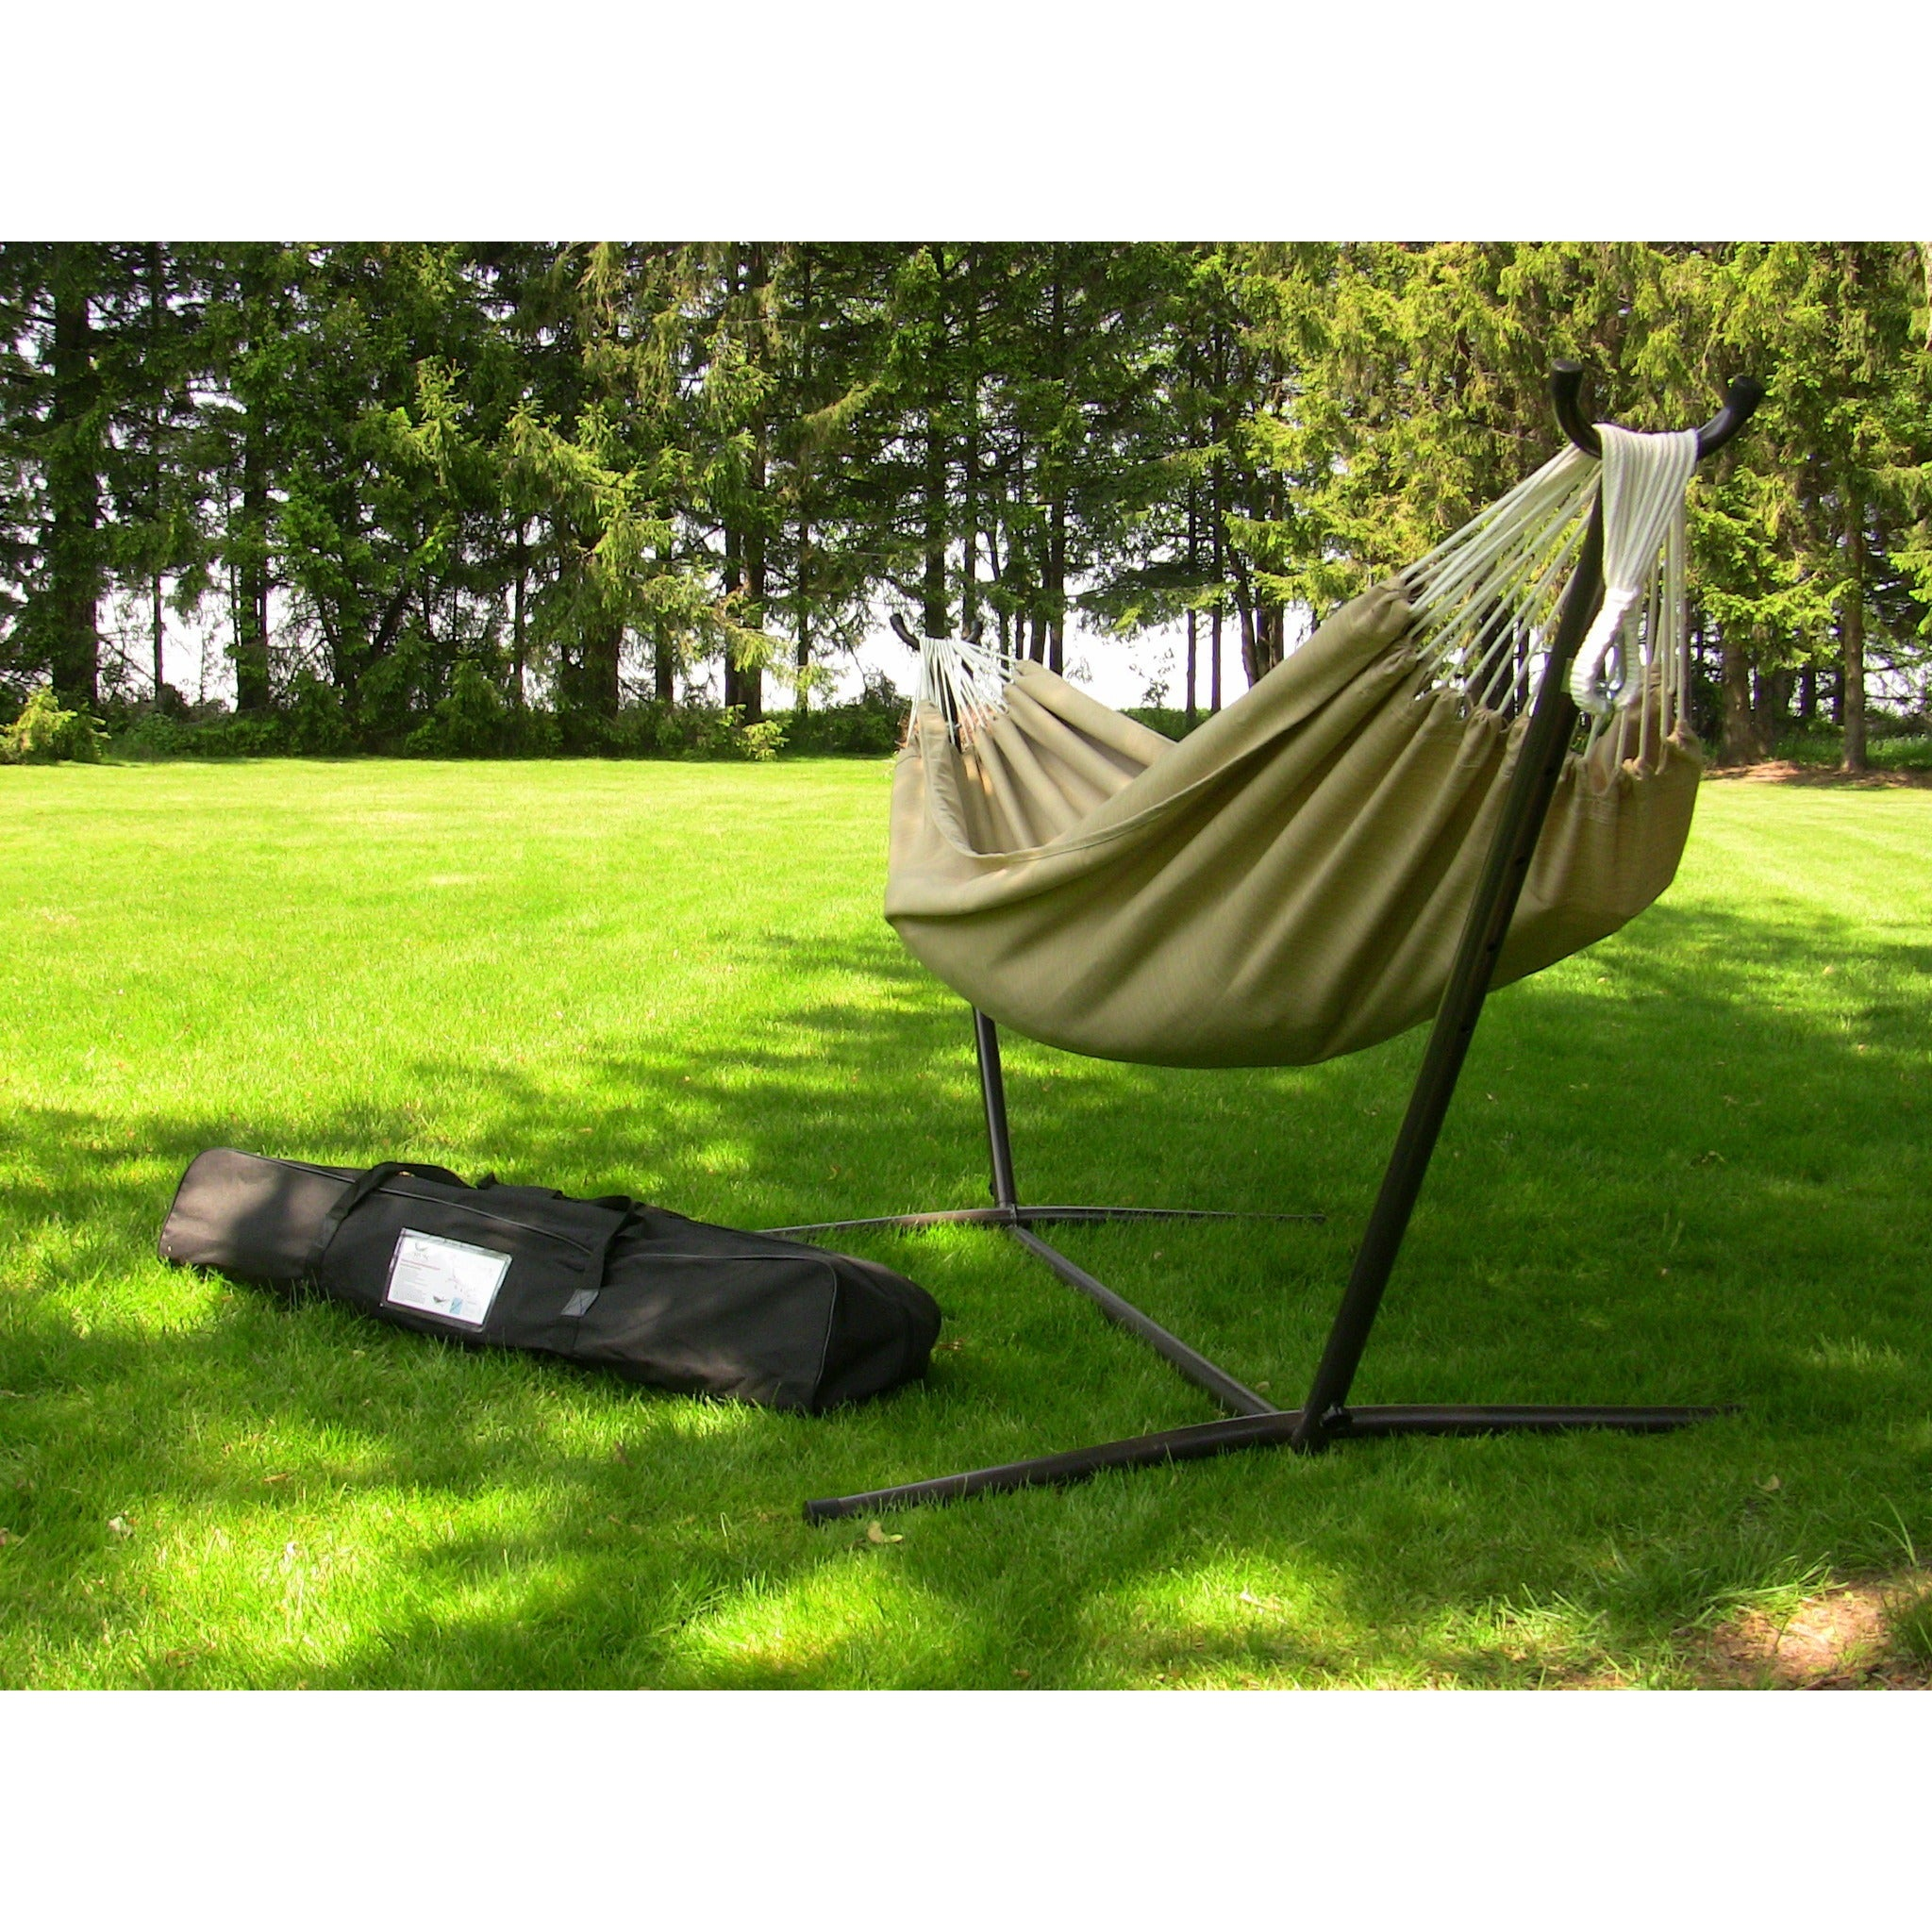 furniture sunbrella cool design hammock with combo full for hammocks stand bedrooms size wayfair bed tumblr vivere sets balcony sale reviews girls ja ideas bedroom designs